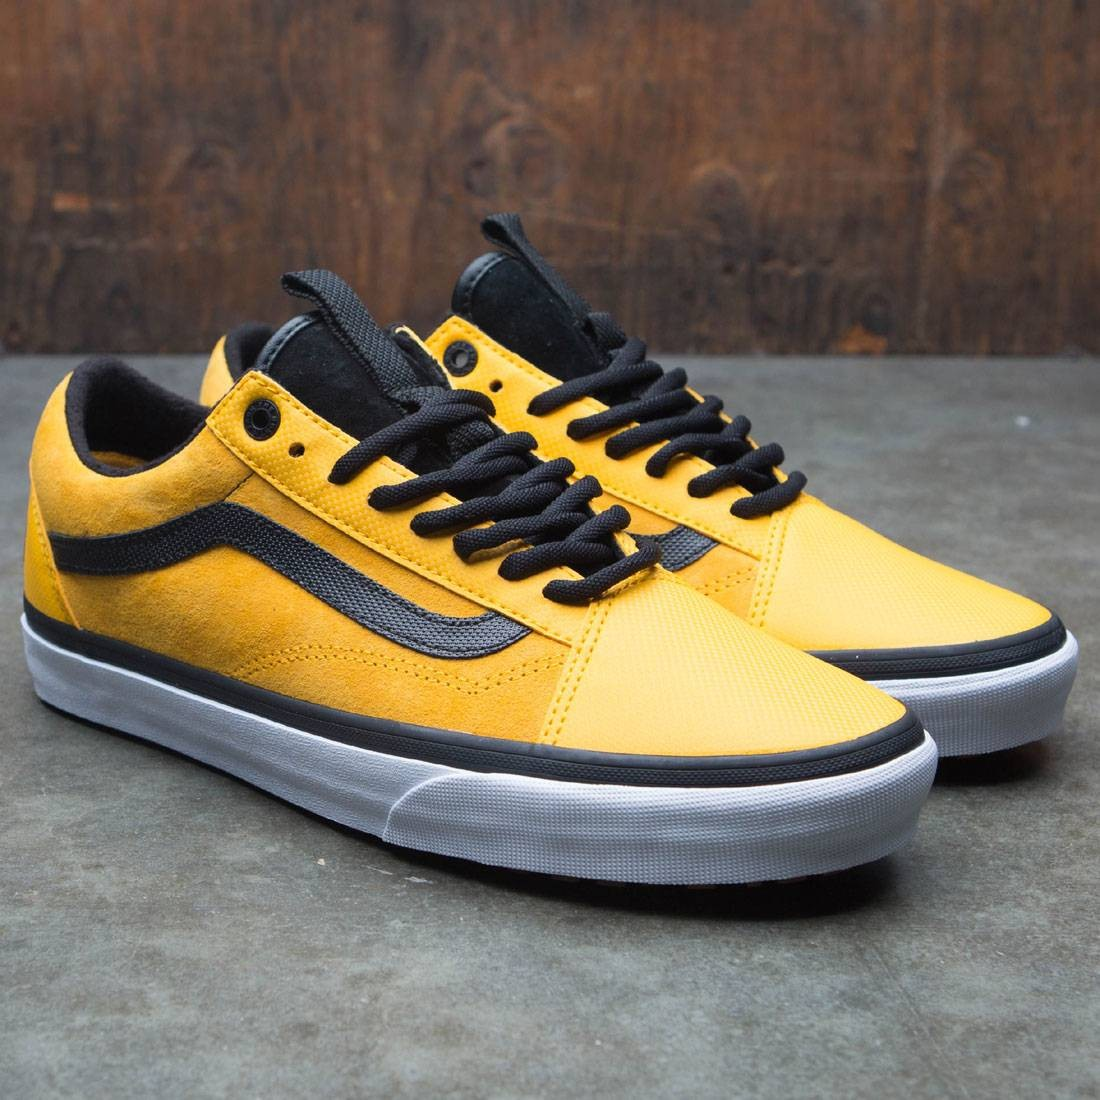 0190e25db0 Vans x The North Face Men Old Skool MTE DX - MTE (yellow   black)